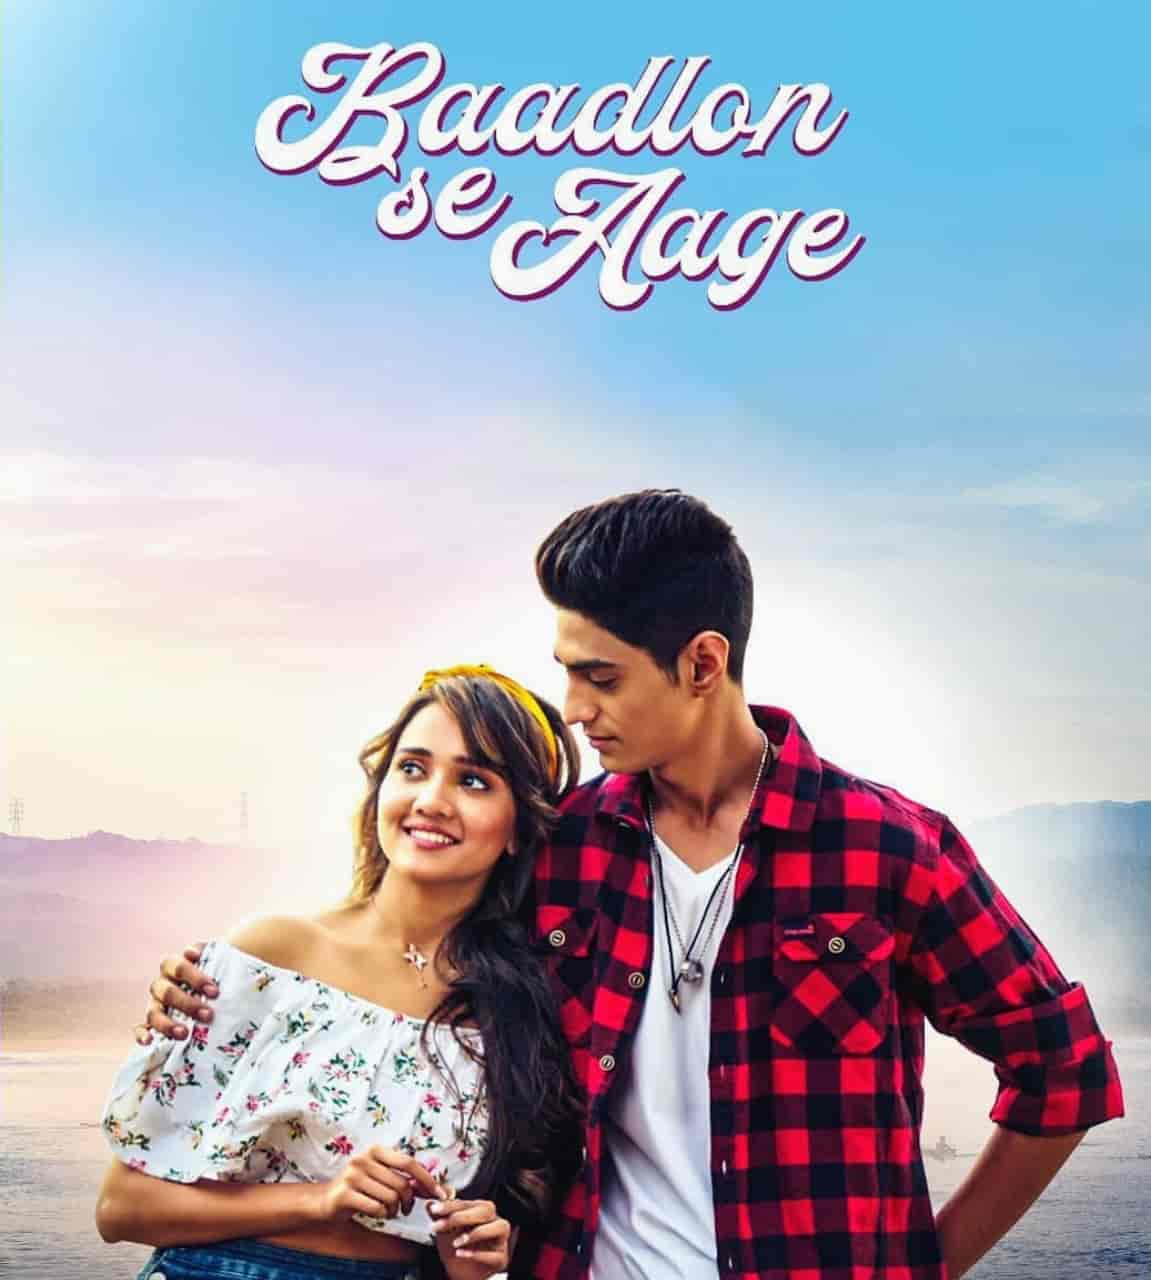 Baadlon Se Aage Non Film Hindi Song Image Features Palak Muchhal And Palaash Muchhal